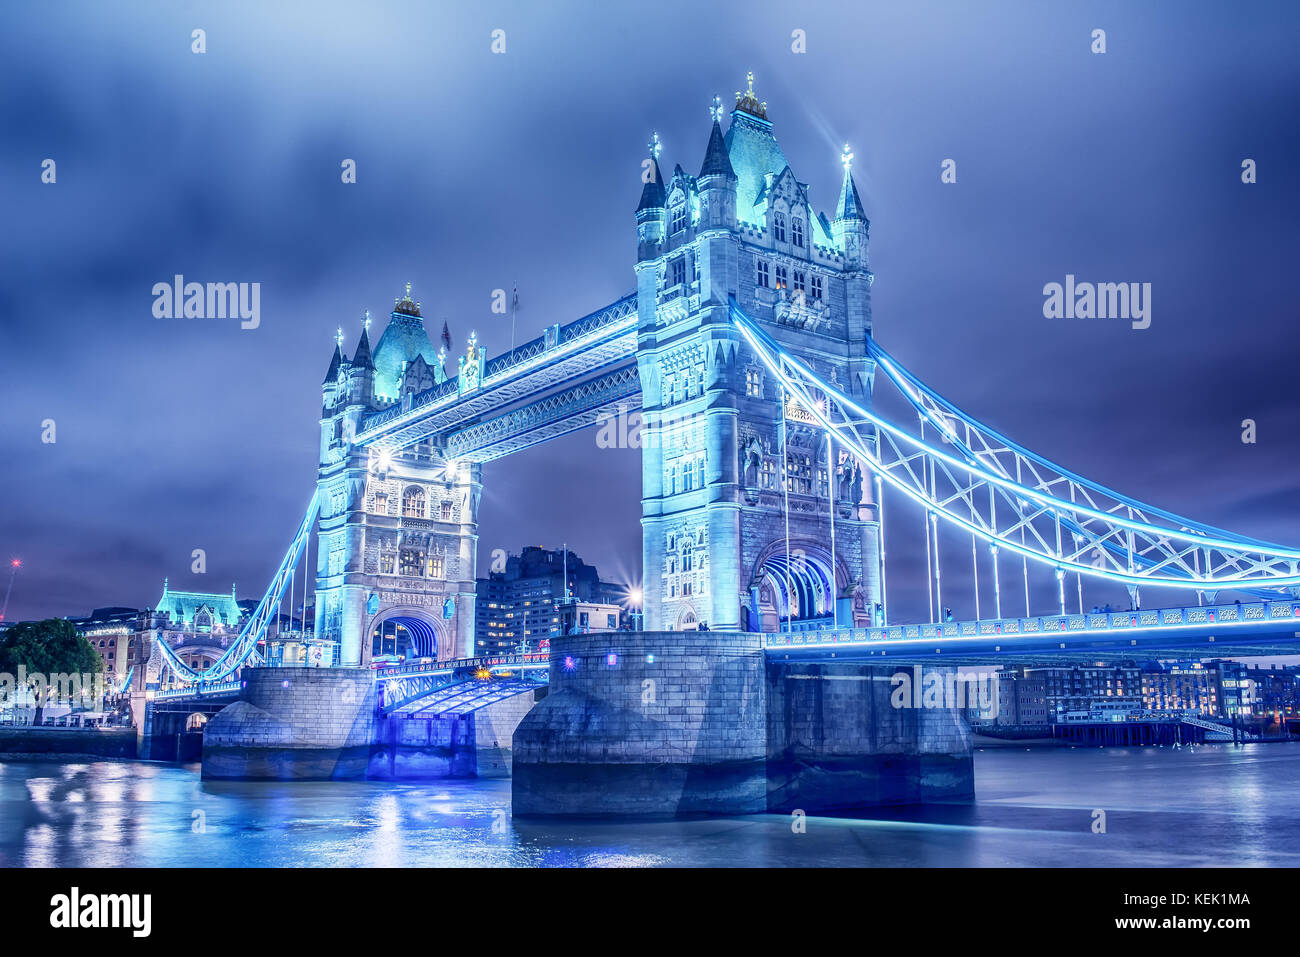 Londres, Royaume-Uni : Tower bridge sur la tamise Photo Stock